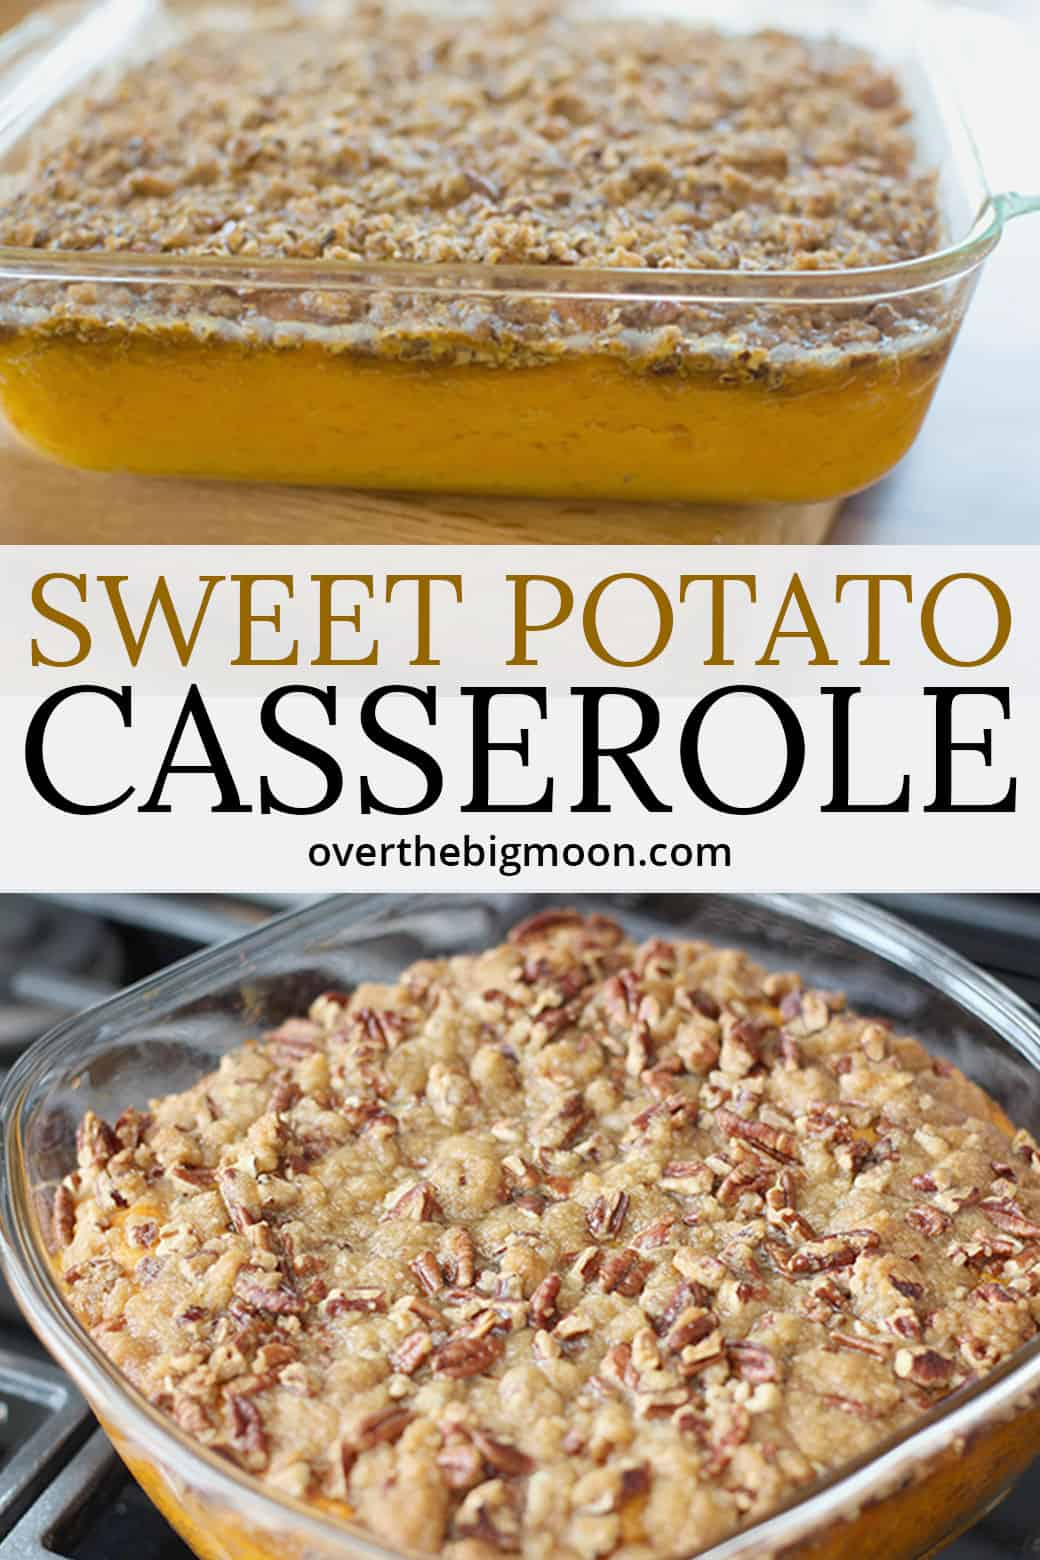 This Sweet Potato Casserole with Brown Sugar and Pecan Crumble Topping will win just about anyone over! This is hands down the most raved about Thanksgiving and Christmas side dish every year! From overthebigmoon.com!